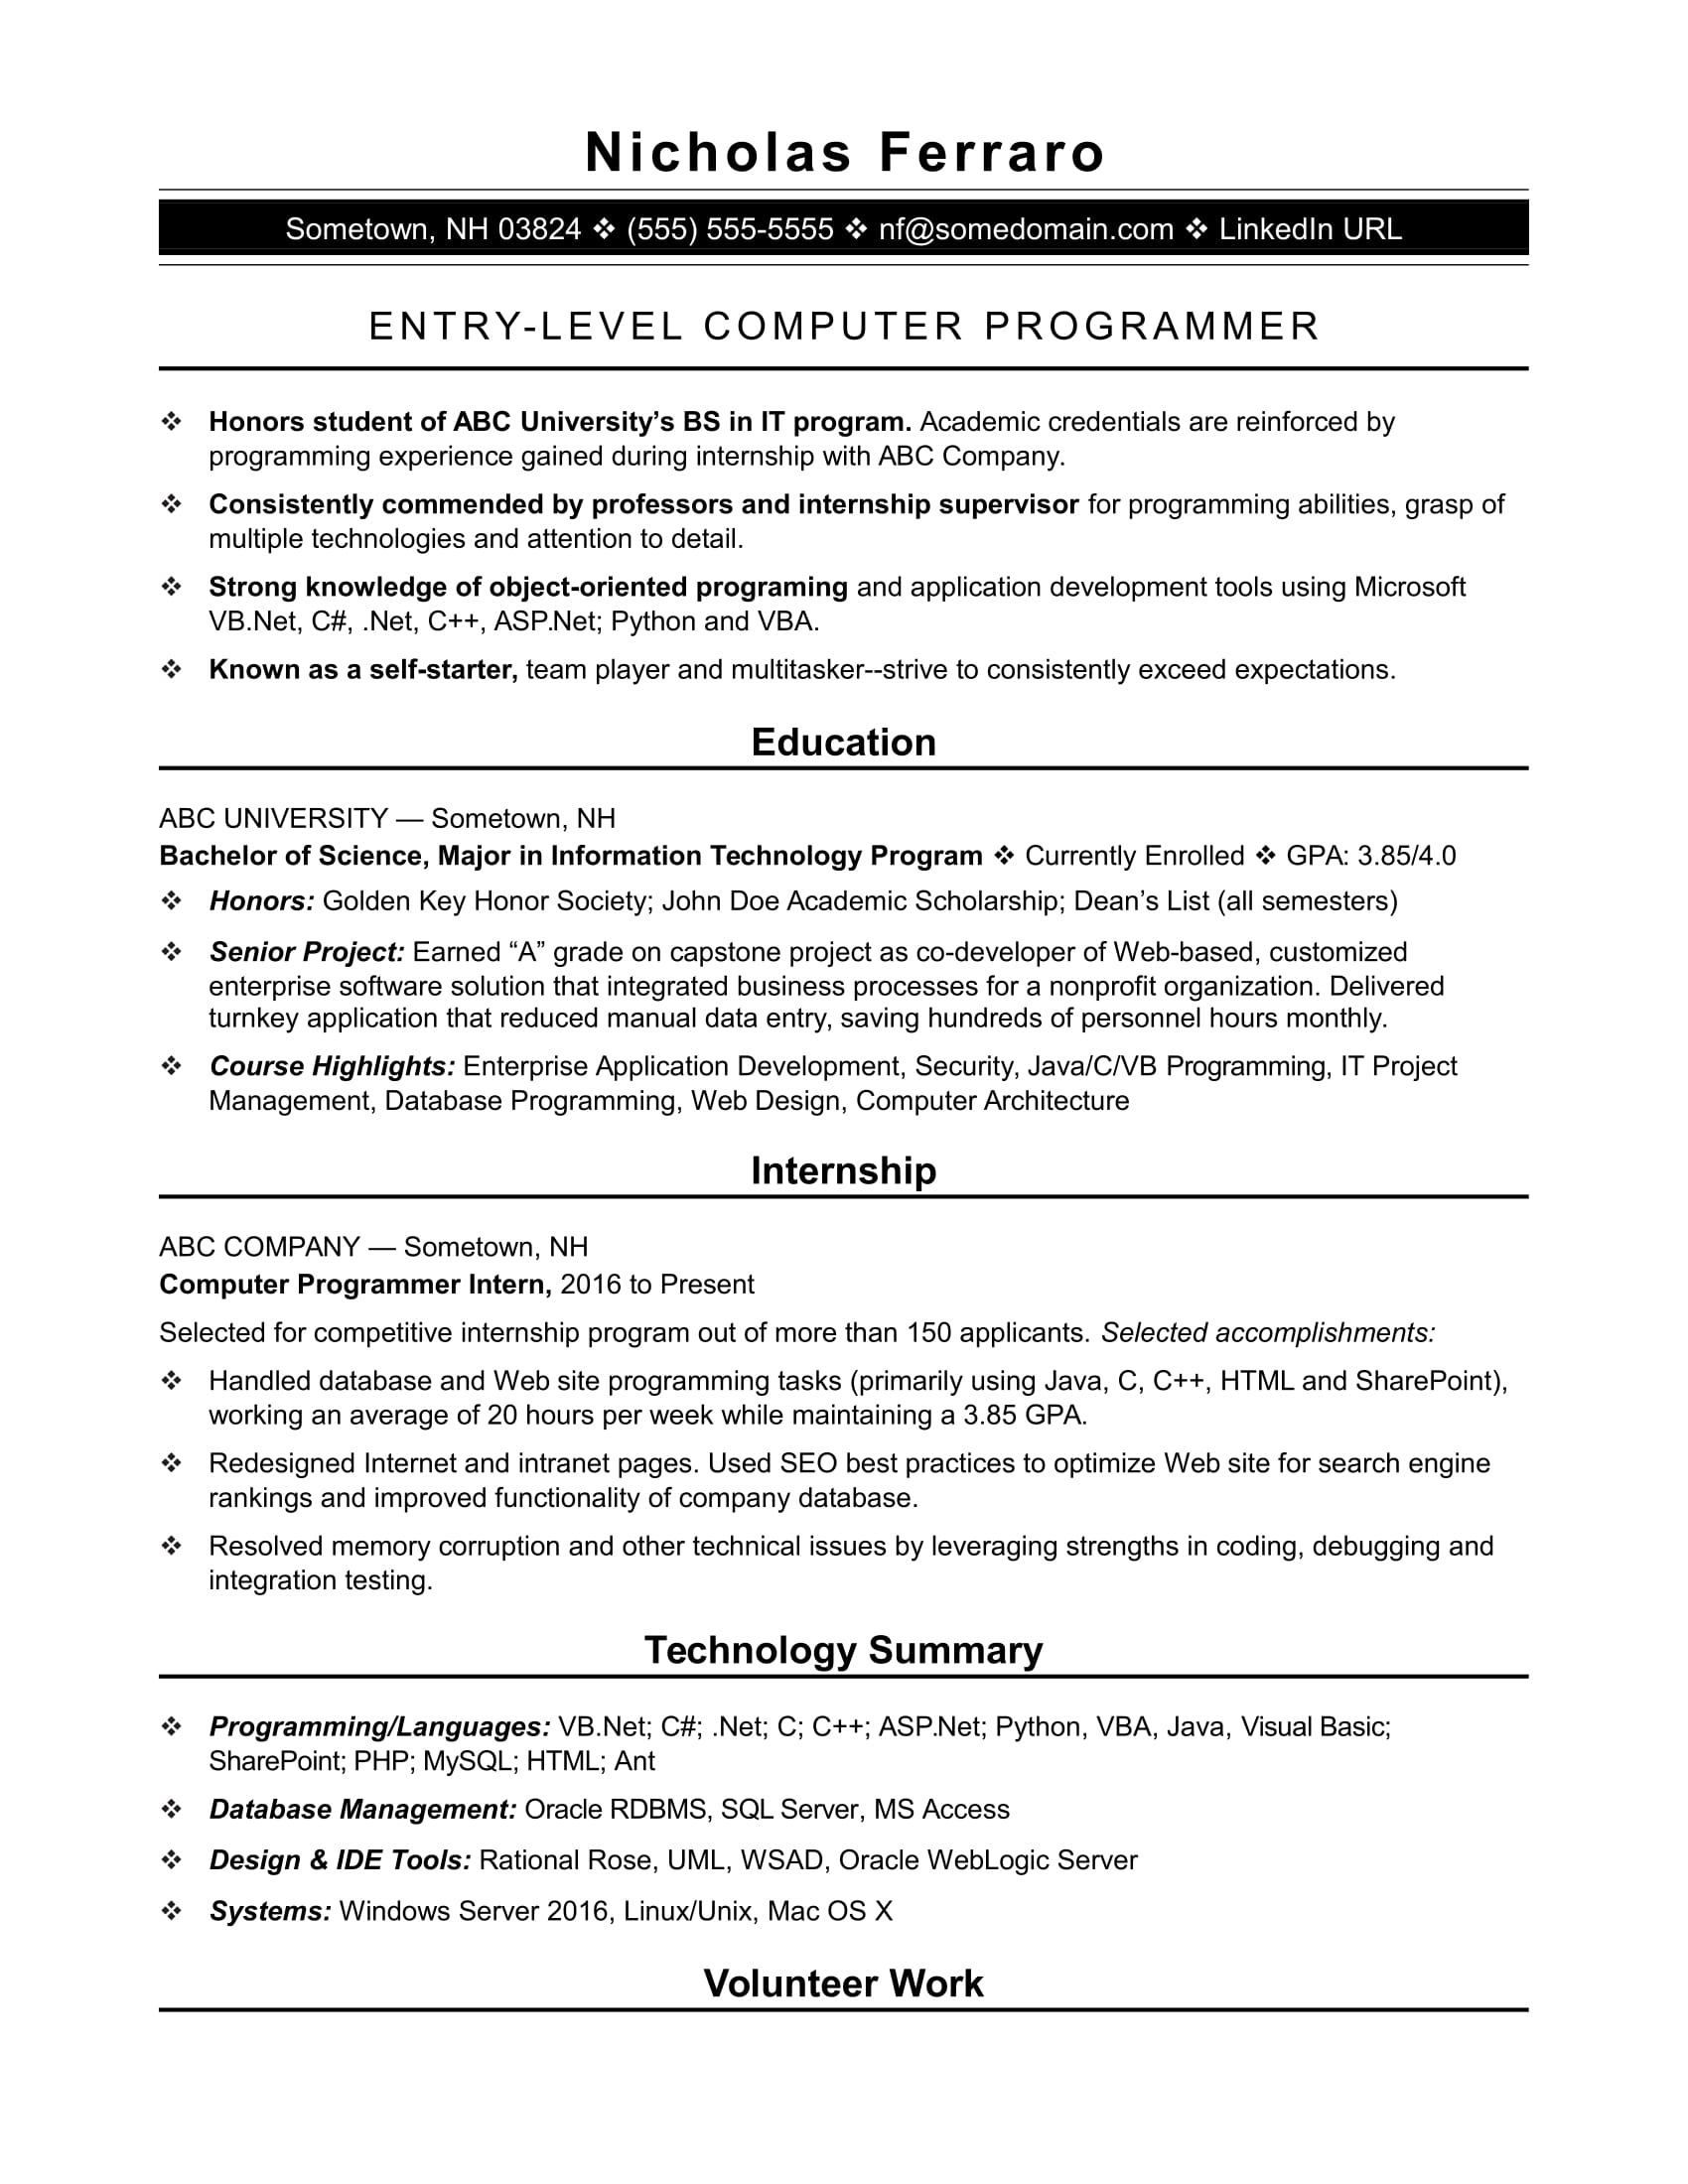 sample resume for an entry level computer programmer - Entry Level Resume Format